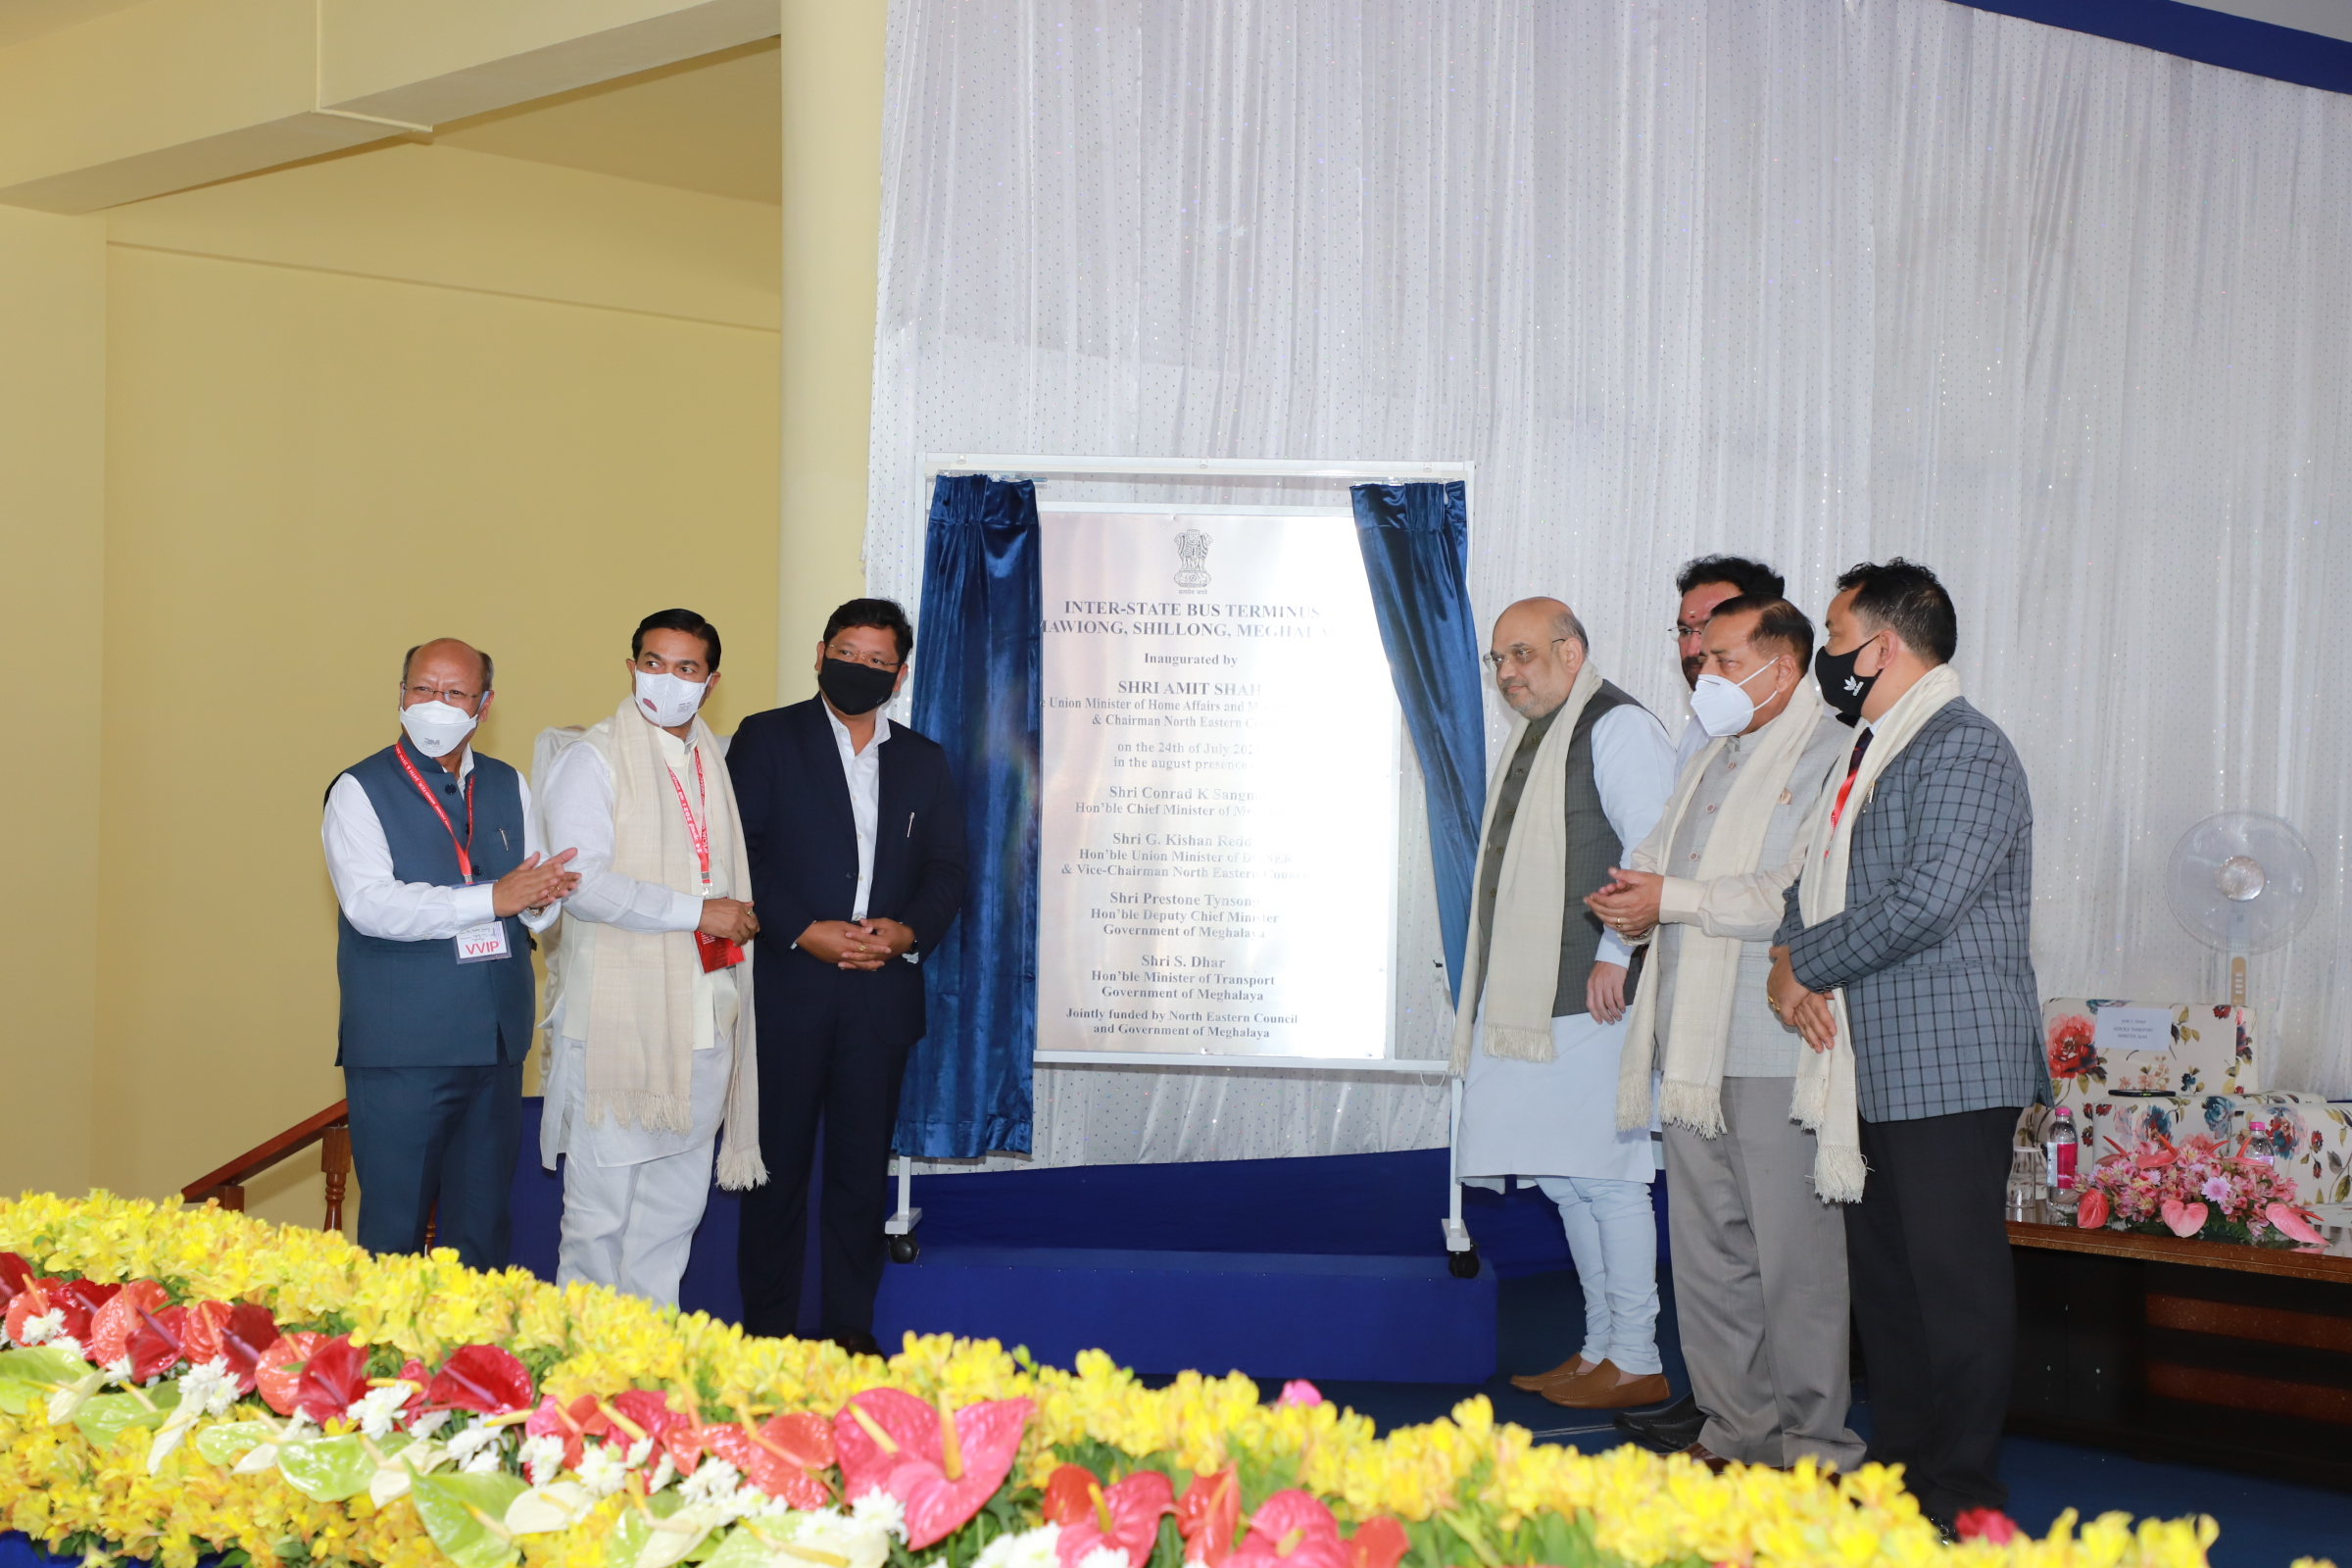 HM Shri Amit SHah Inaugurated the Inter-State Bus Terminus (ISBT)